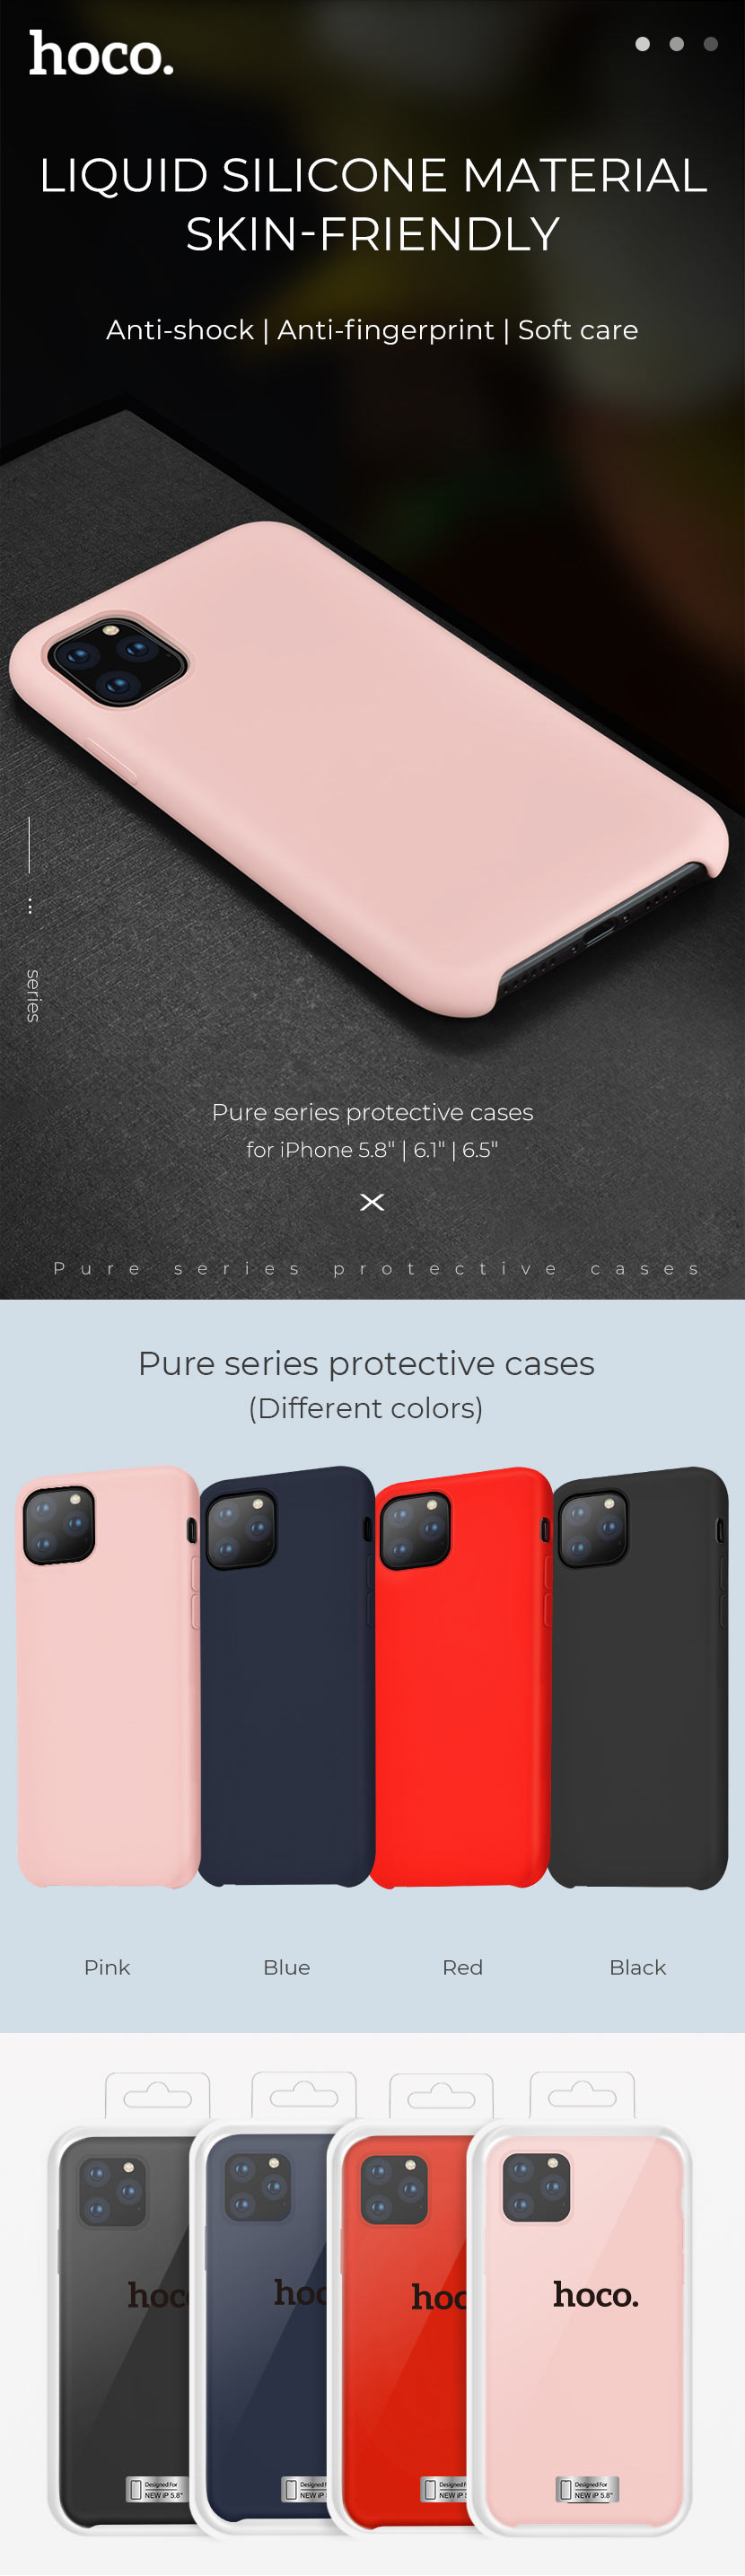 hoco news 2019 iphone case collection pure series en